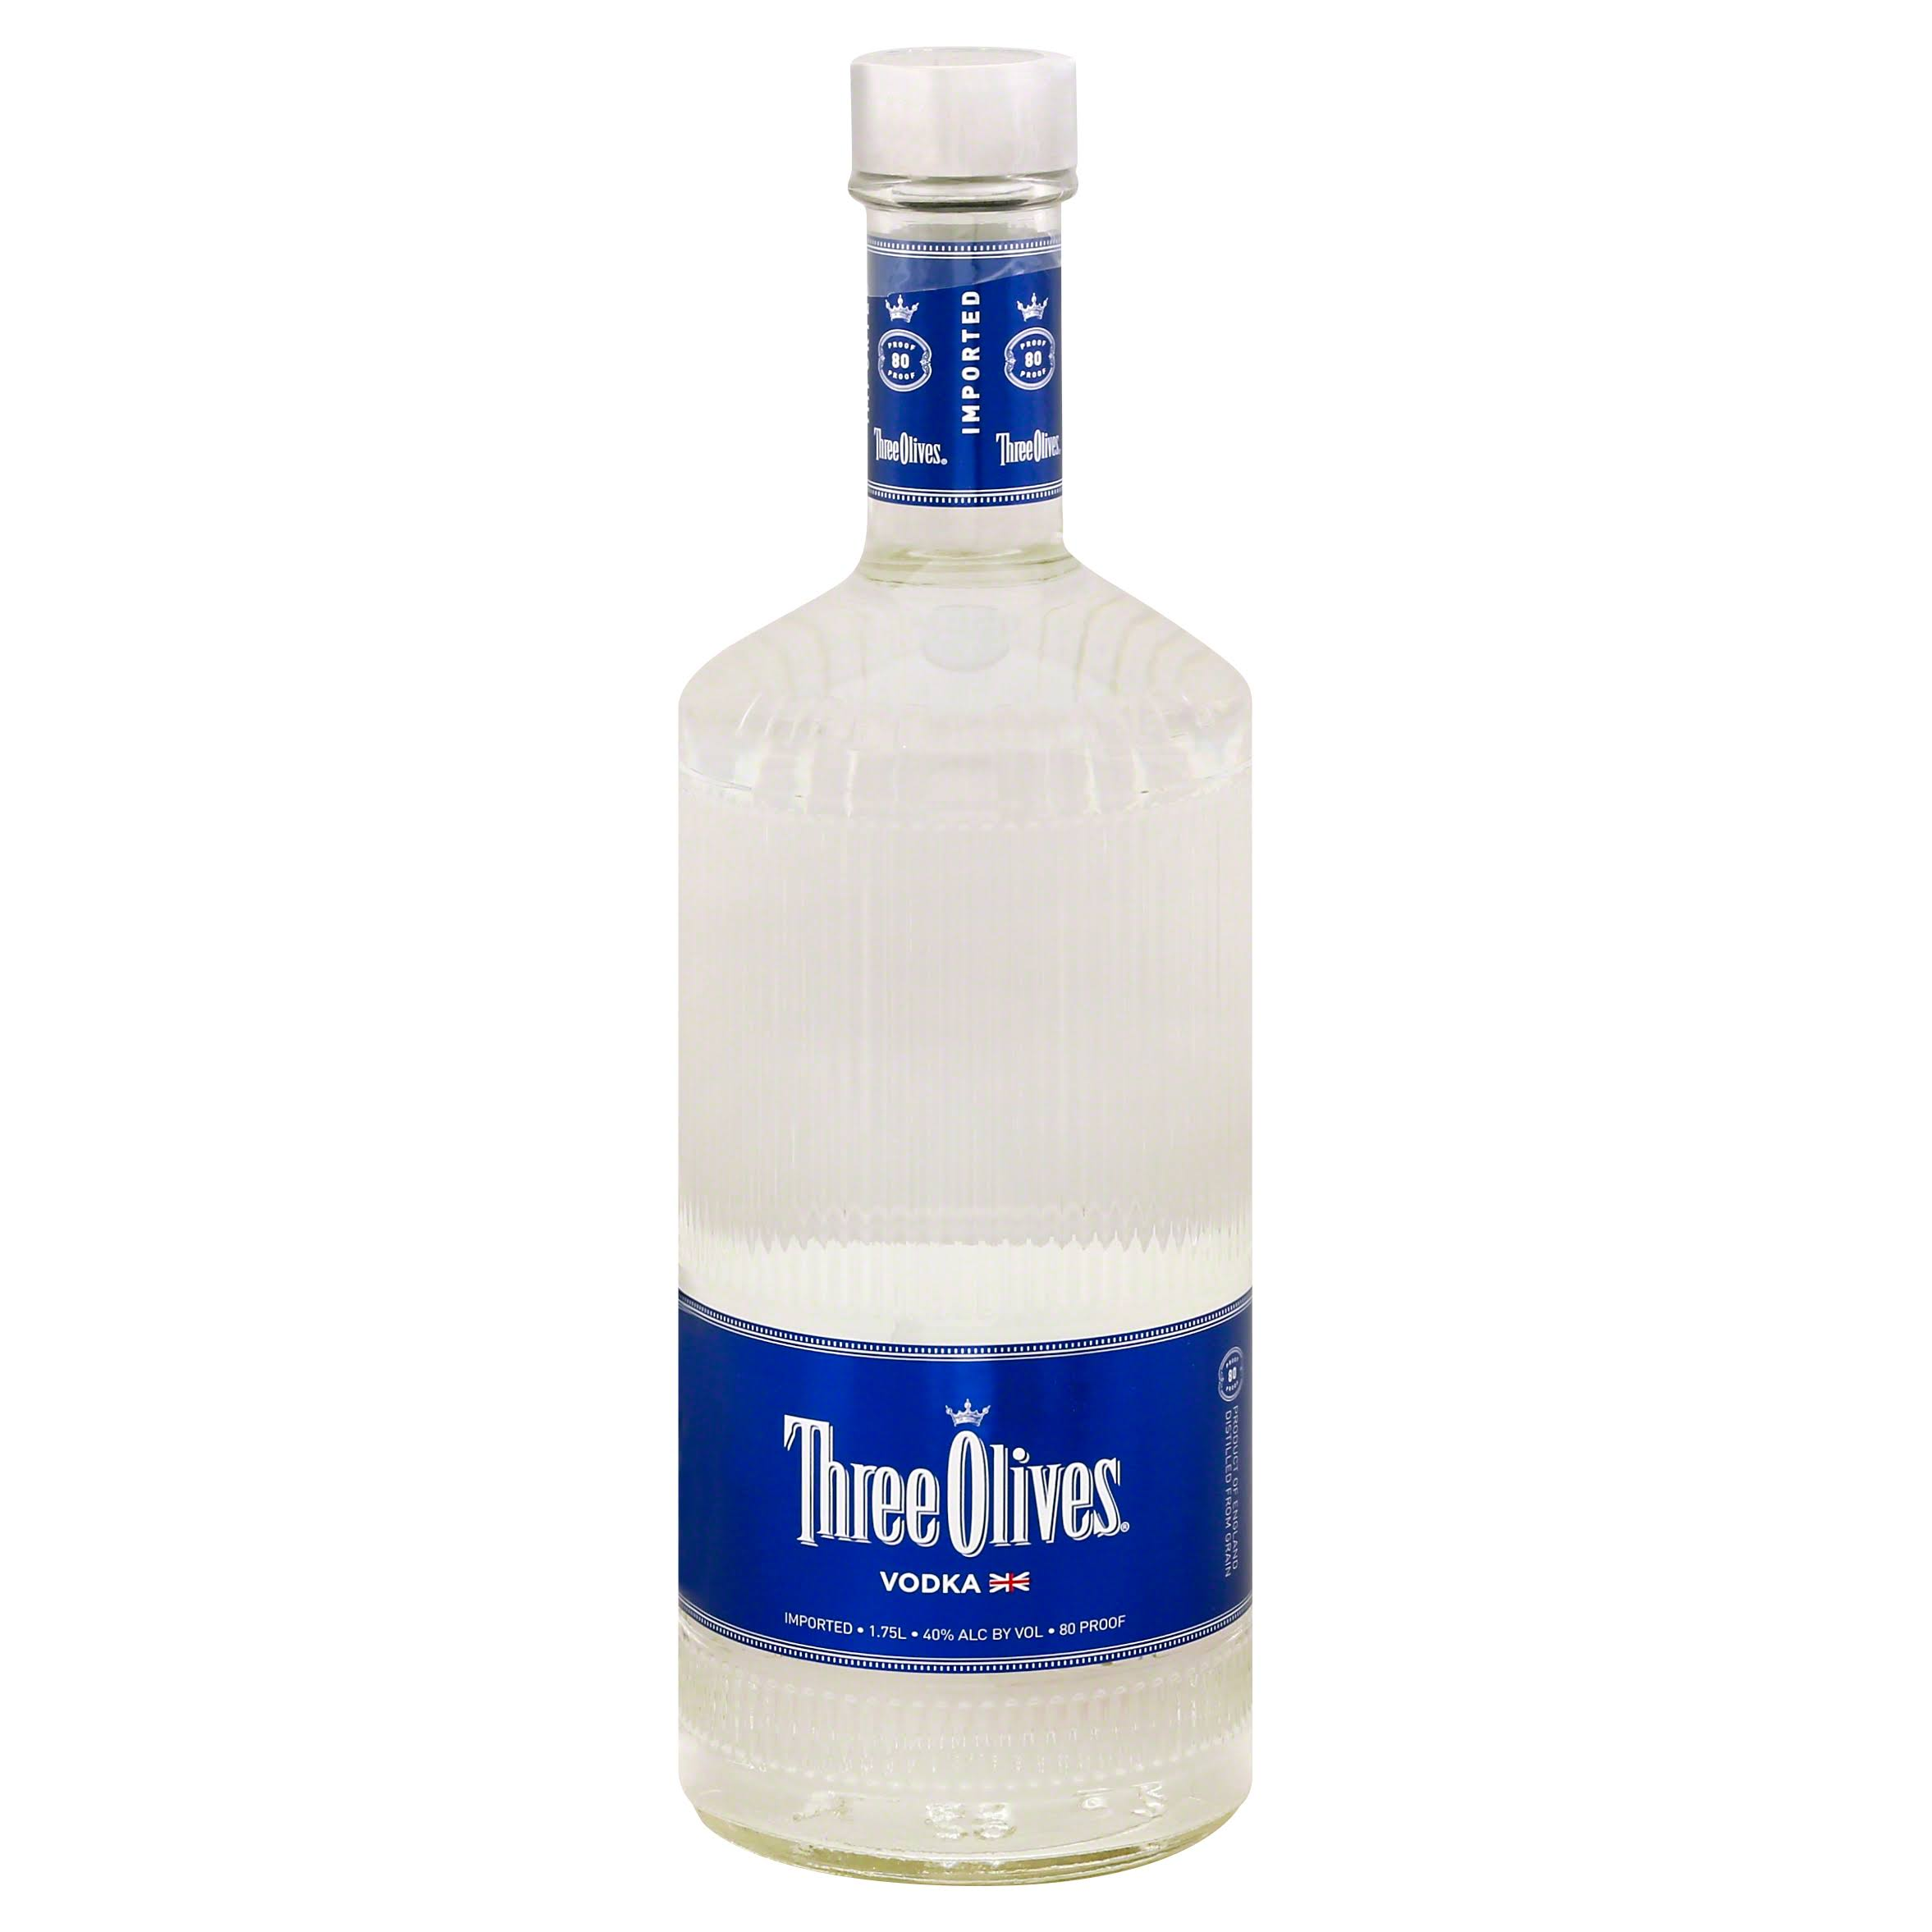 Three Olives Vodka - 1.75 L bottle